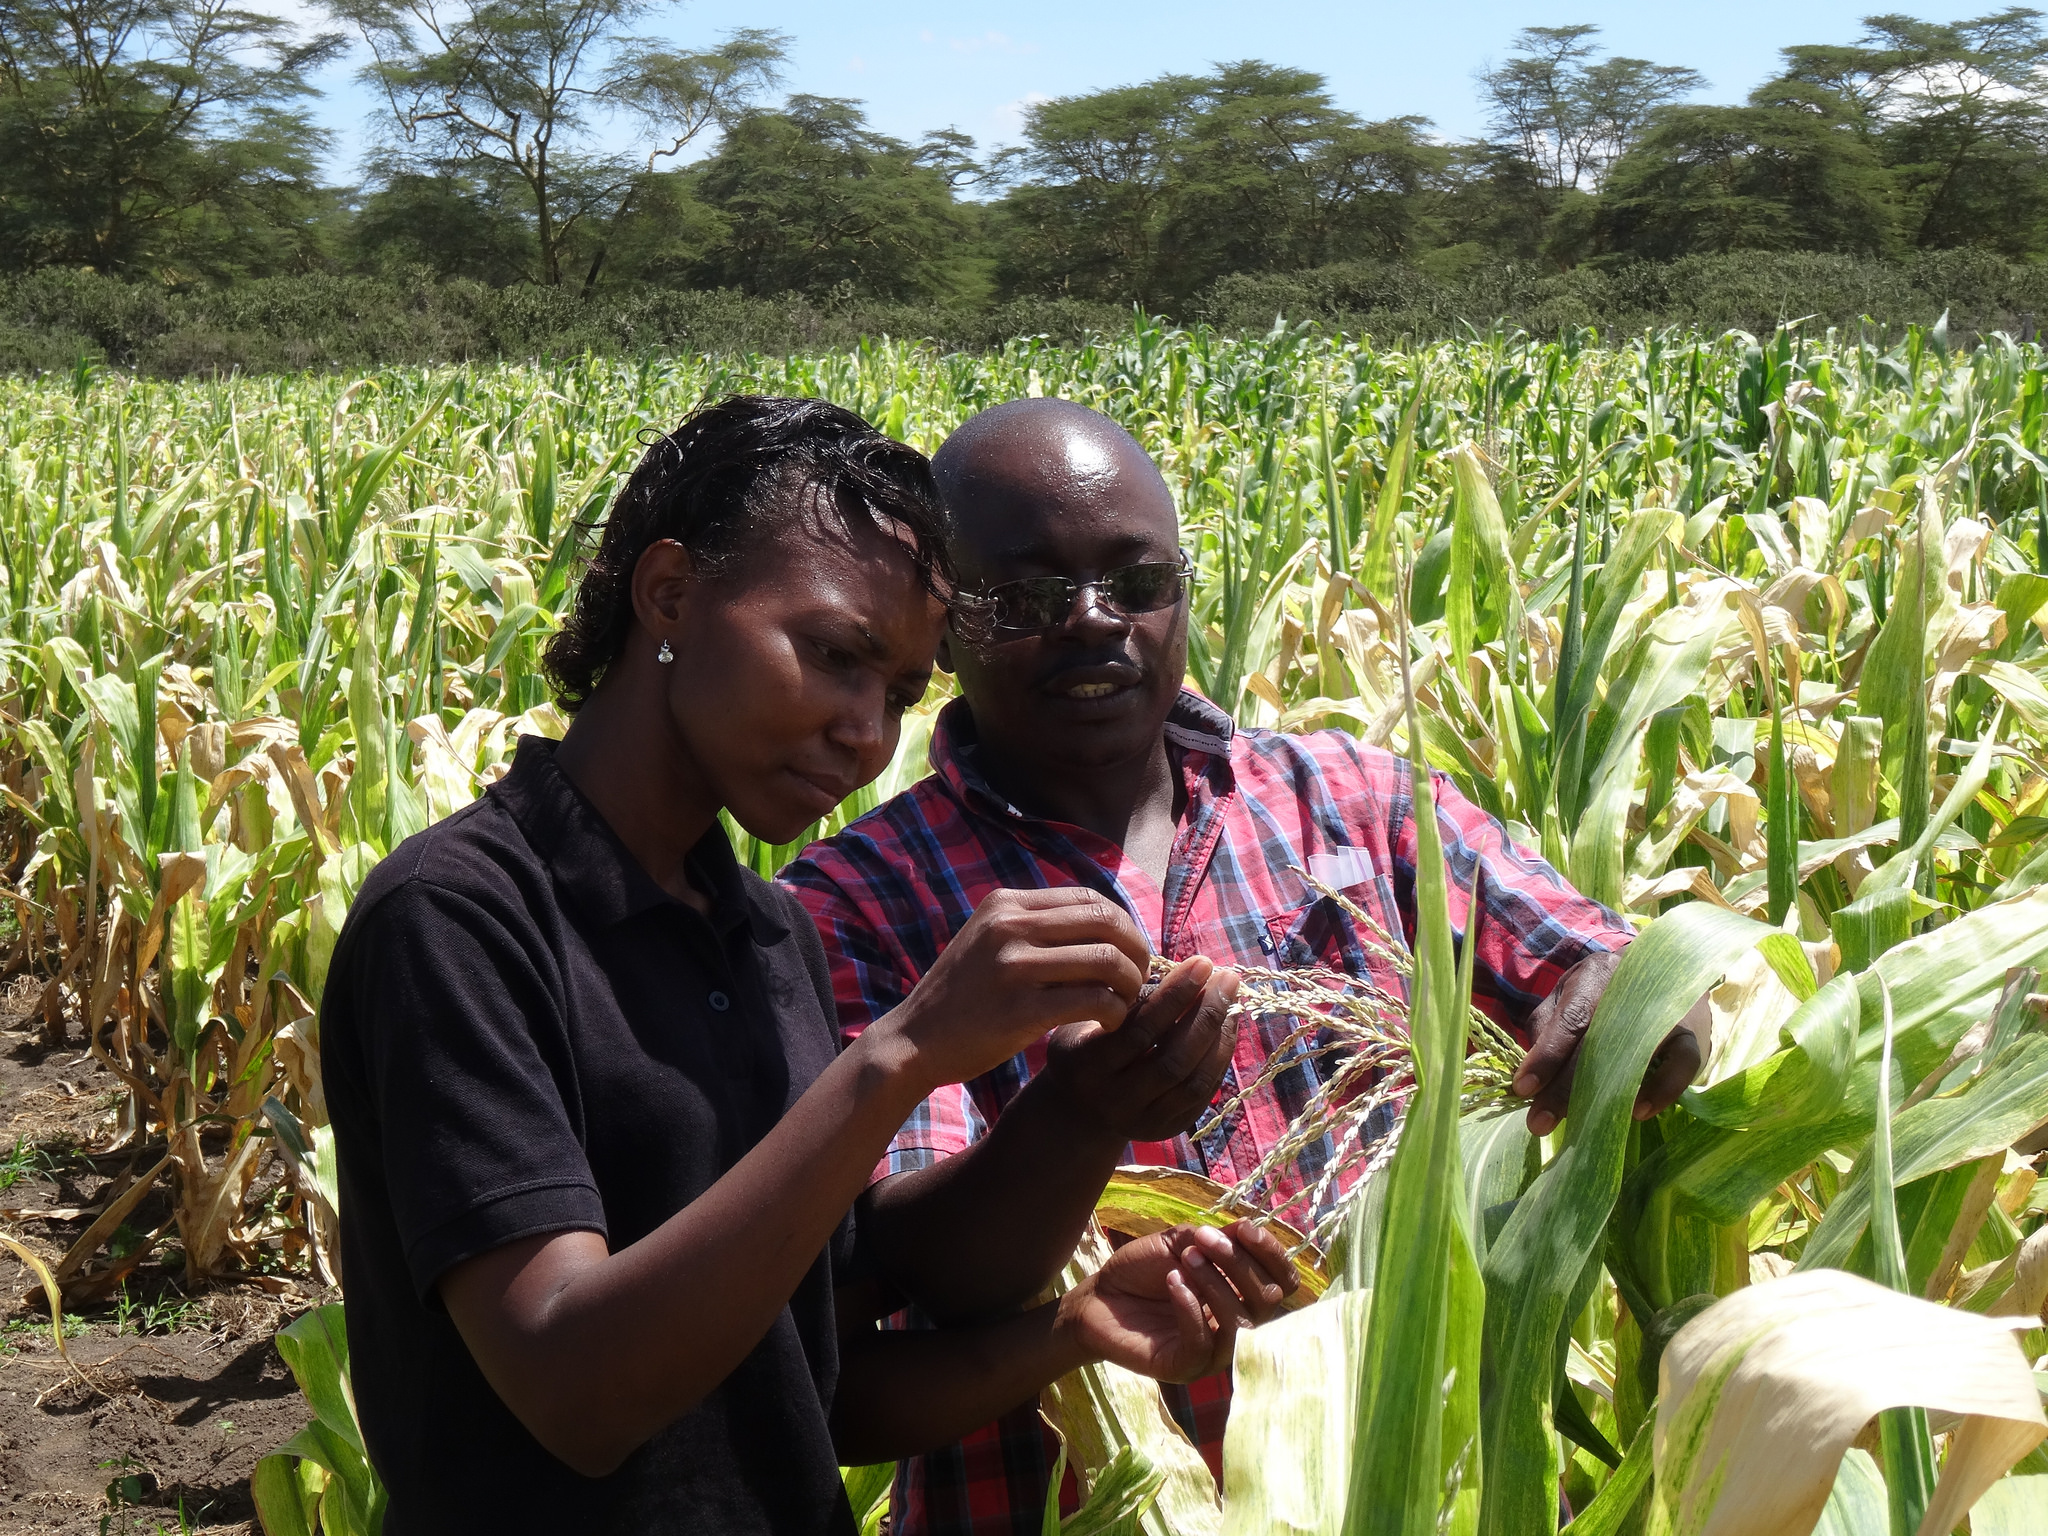 African scientists working in the field